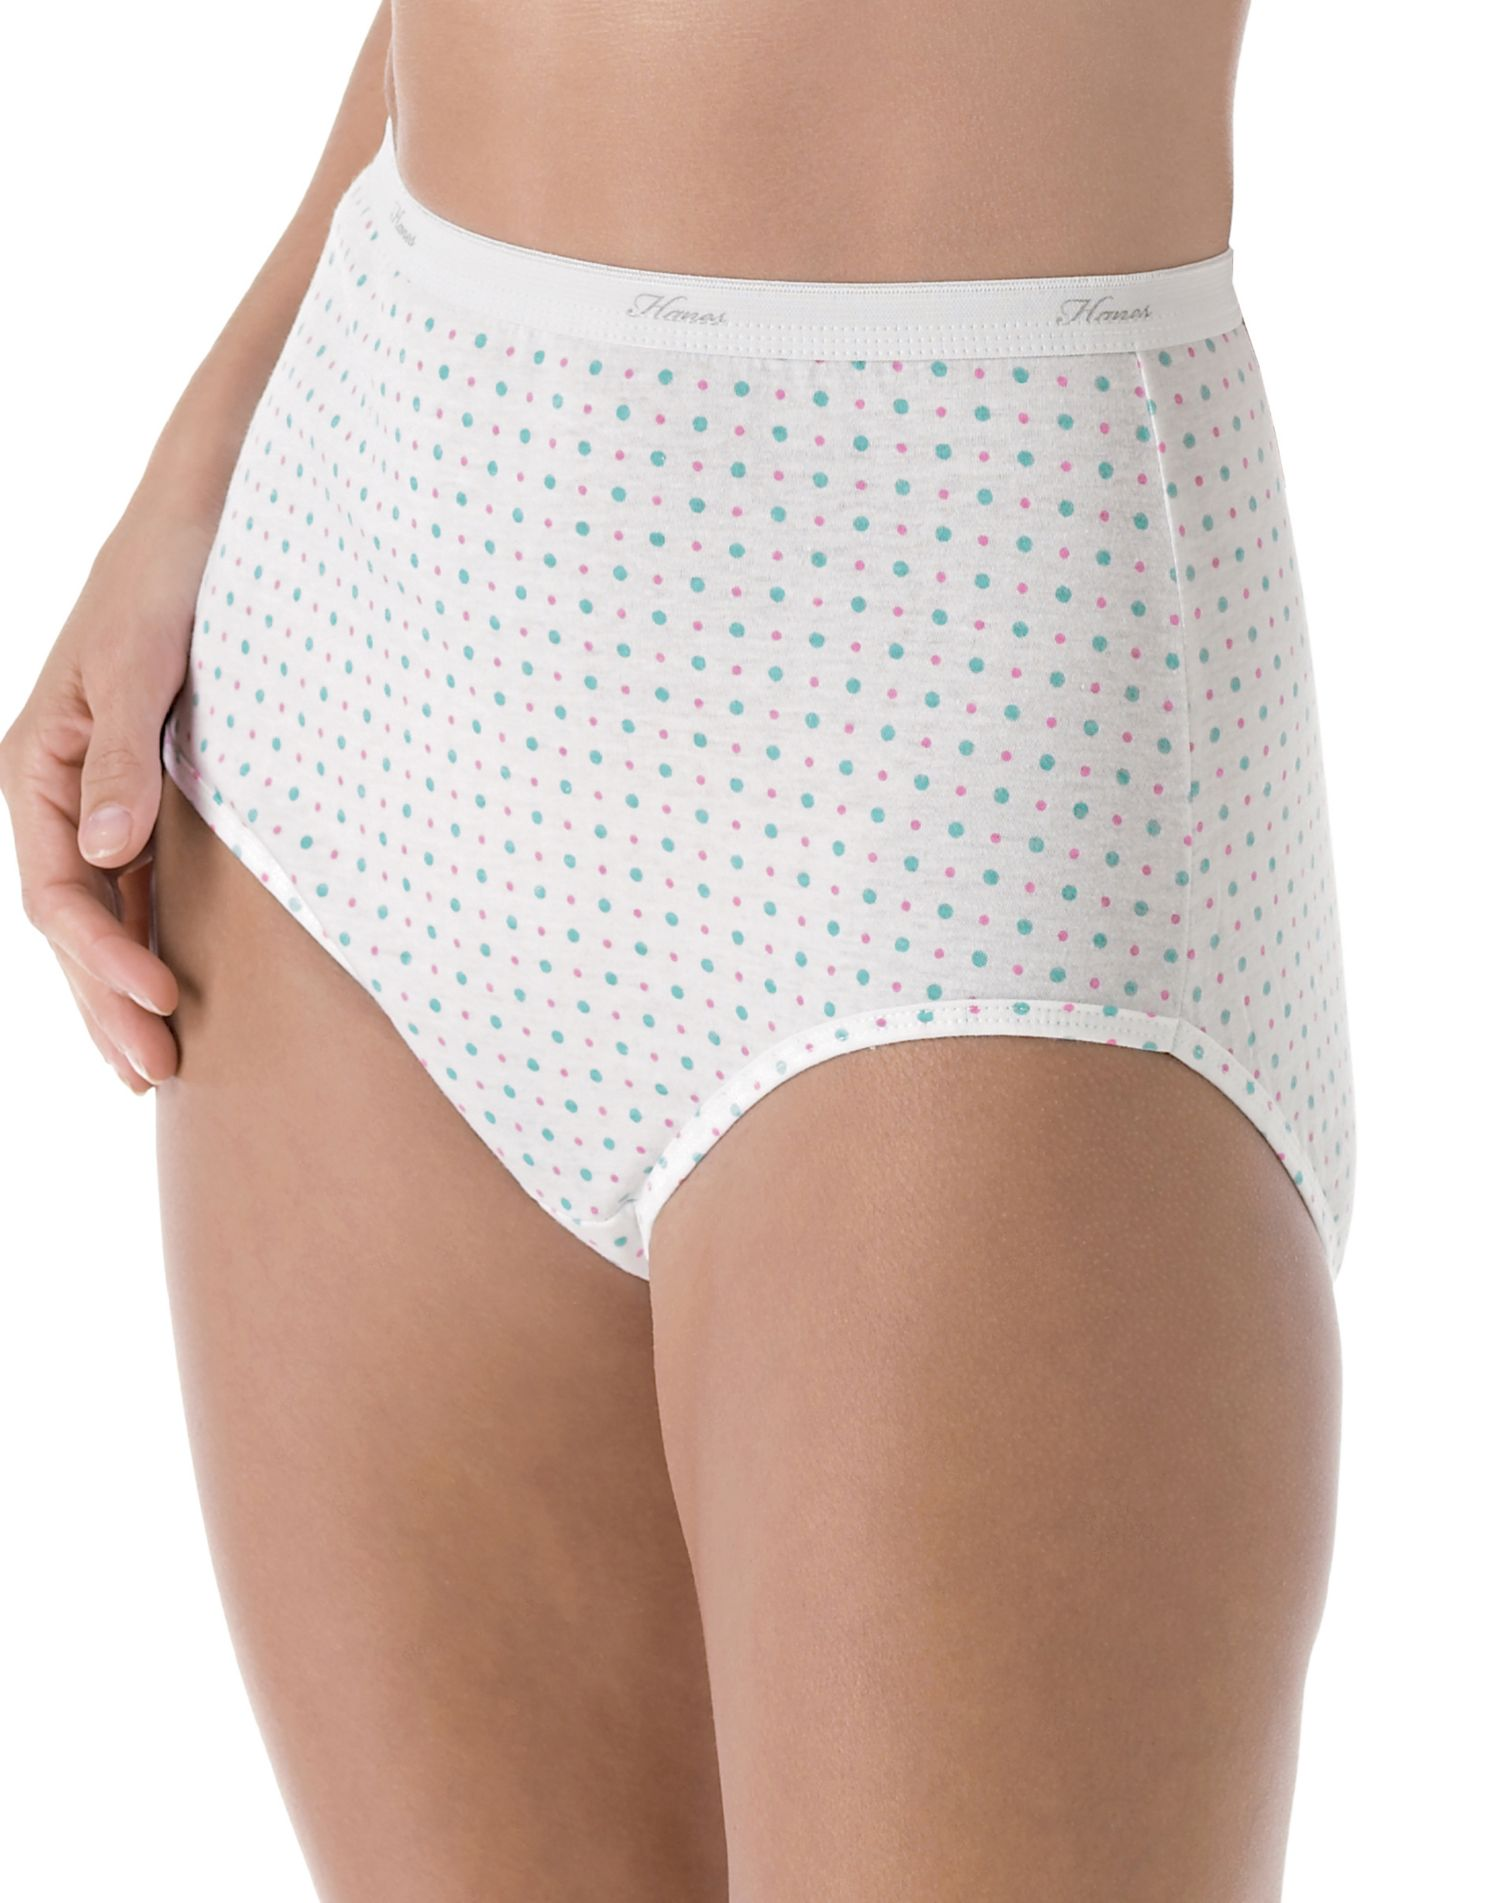 Best prices on Nude cotton briefs in Women's Panties online. Visit Bizrate to find the best deals on top brands. Read reviews on Clothing & Accessories merchants and buy with confidence.